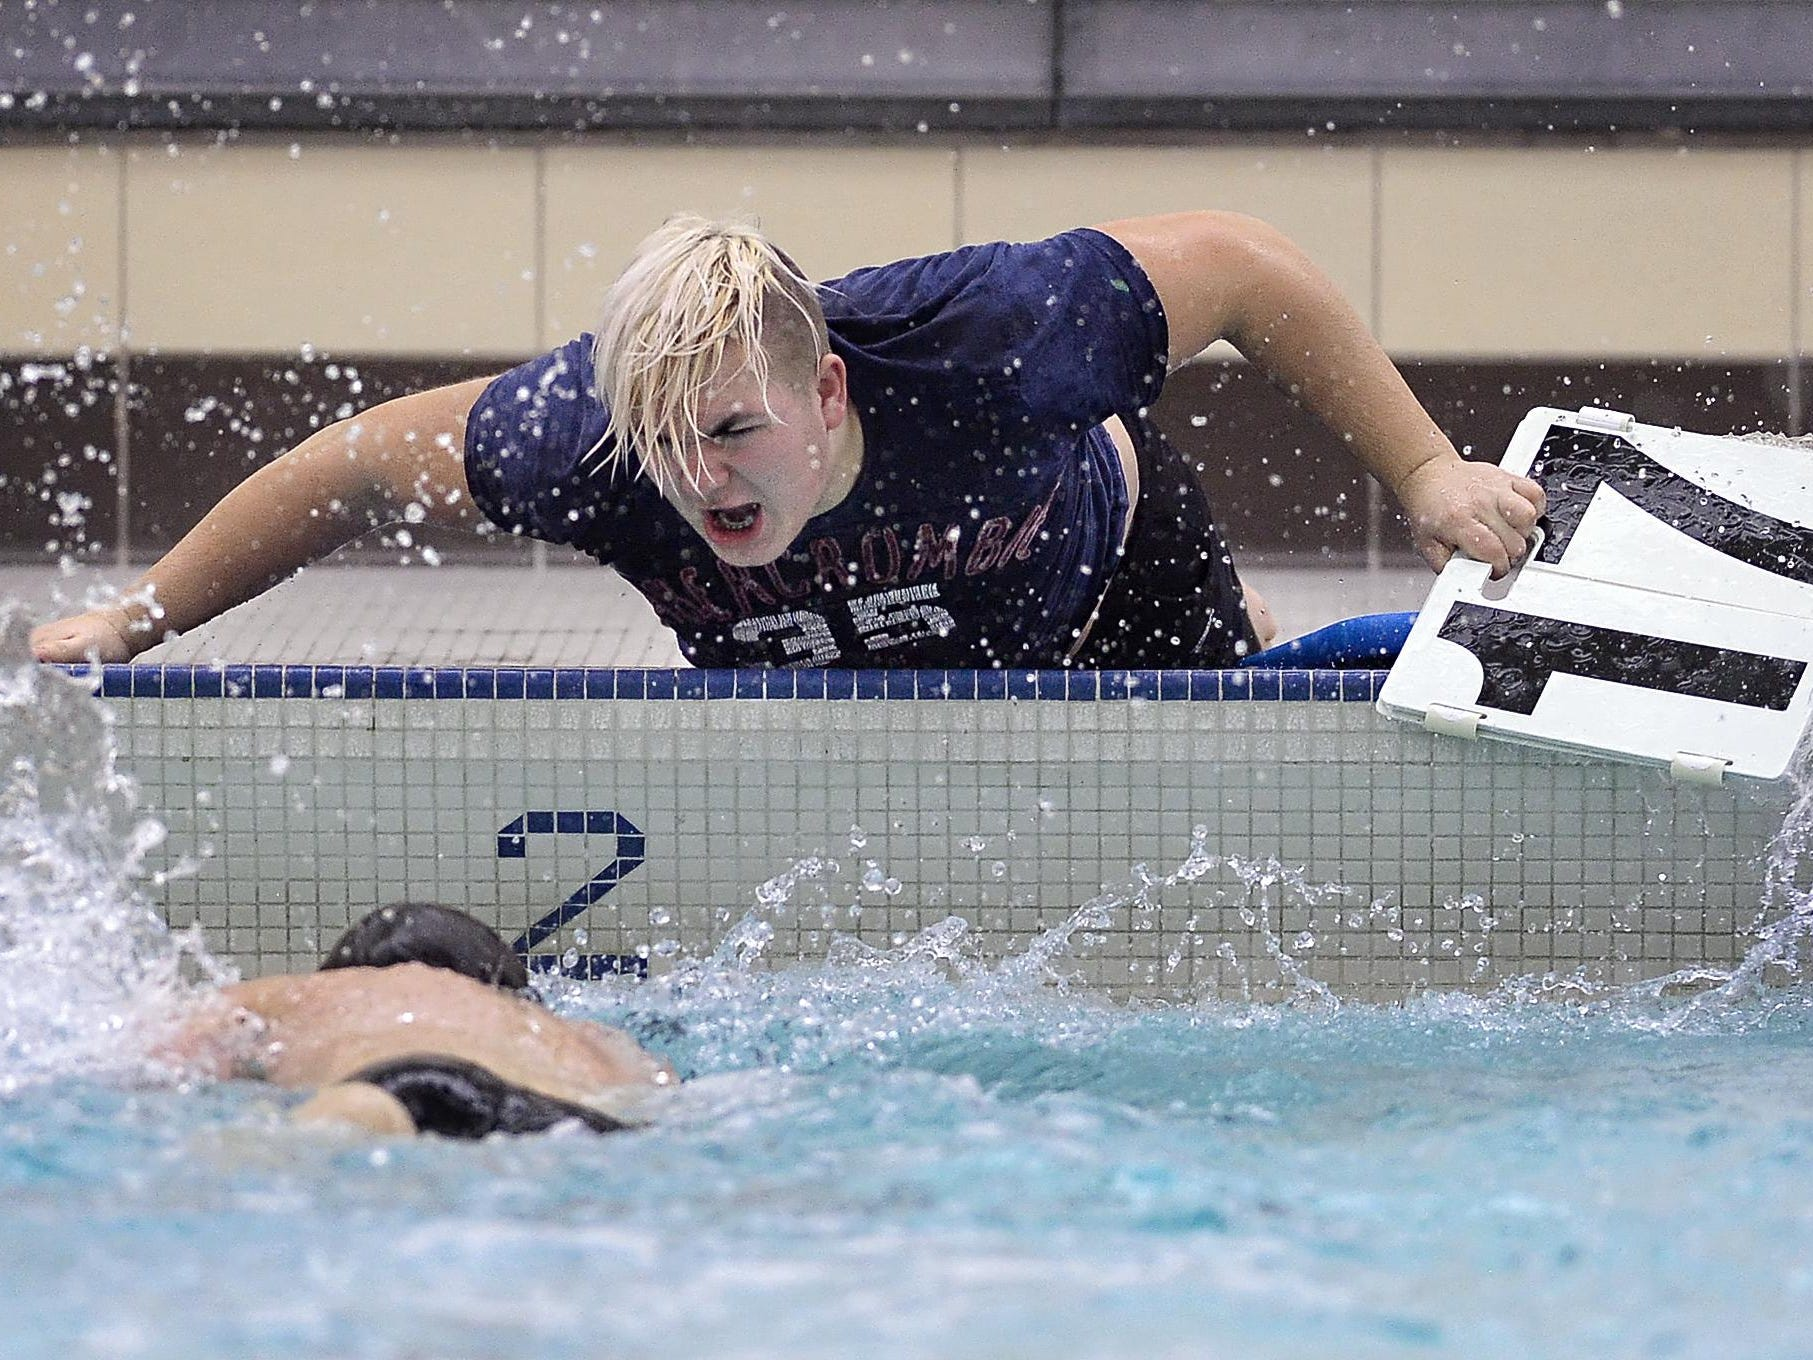 Brockport senior Sam Briggs, top, urges on Mike Spagnola as he makes a turn in the 500-yard freestyle.